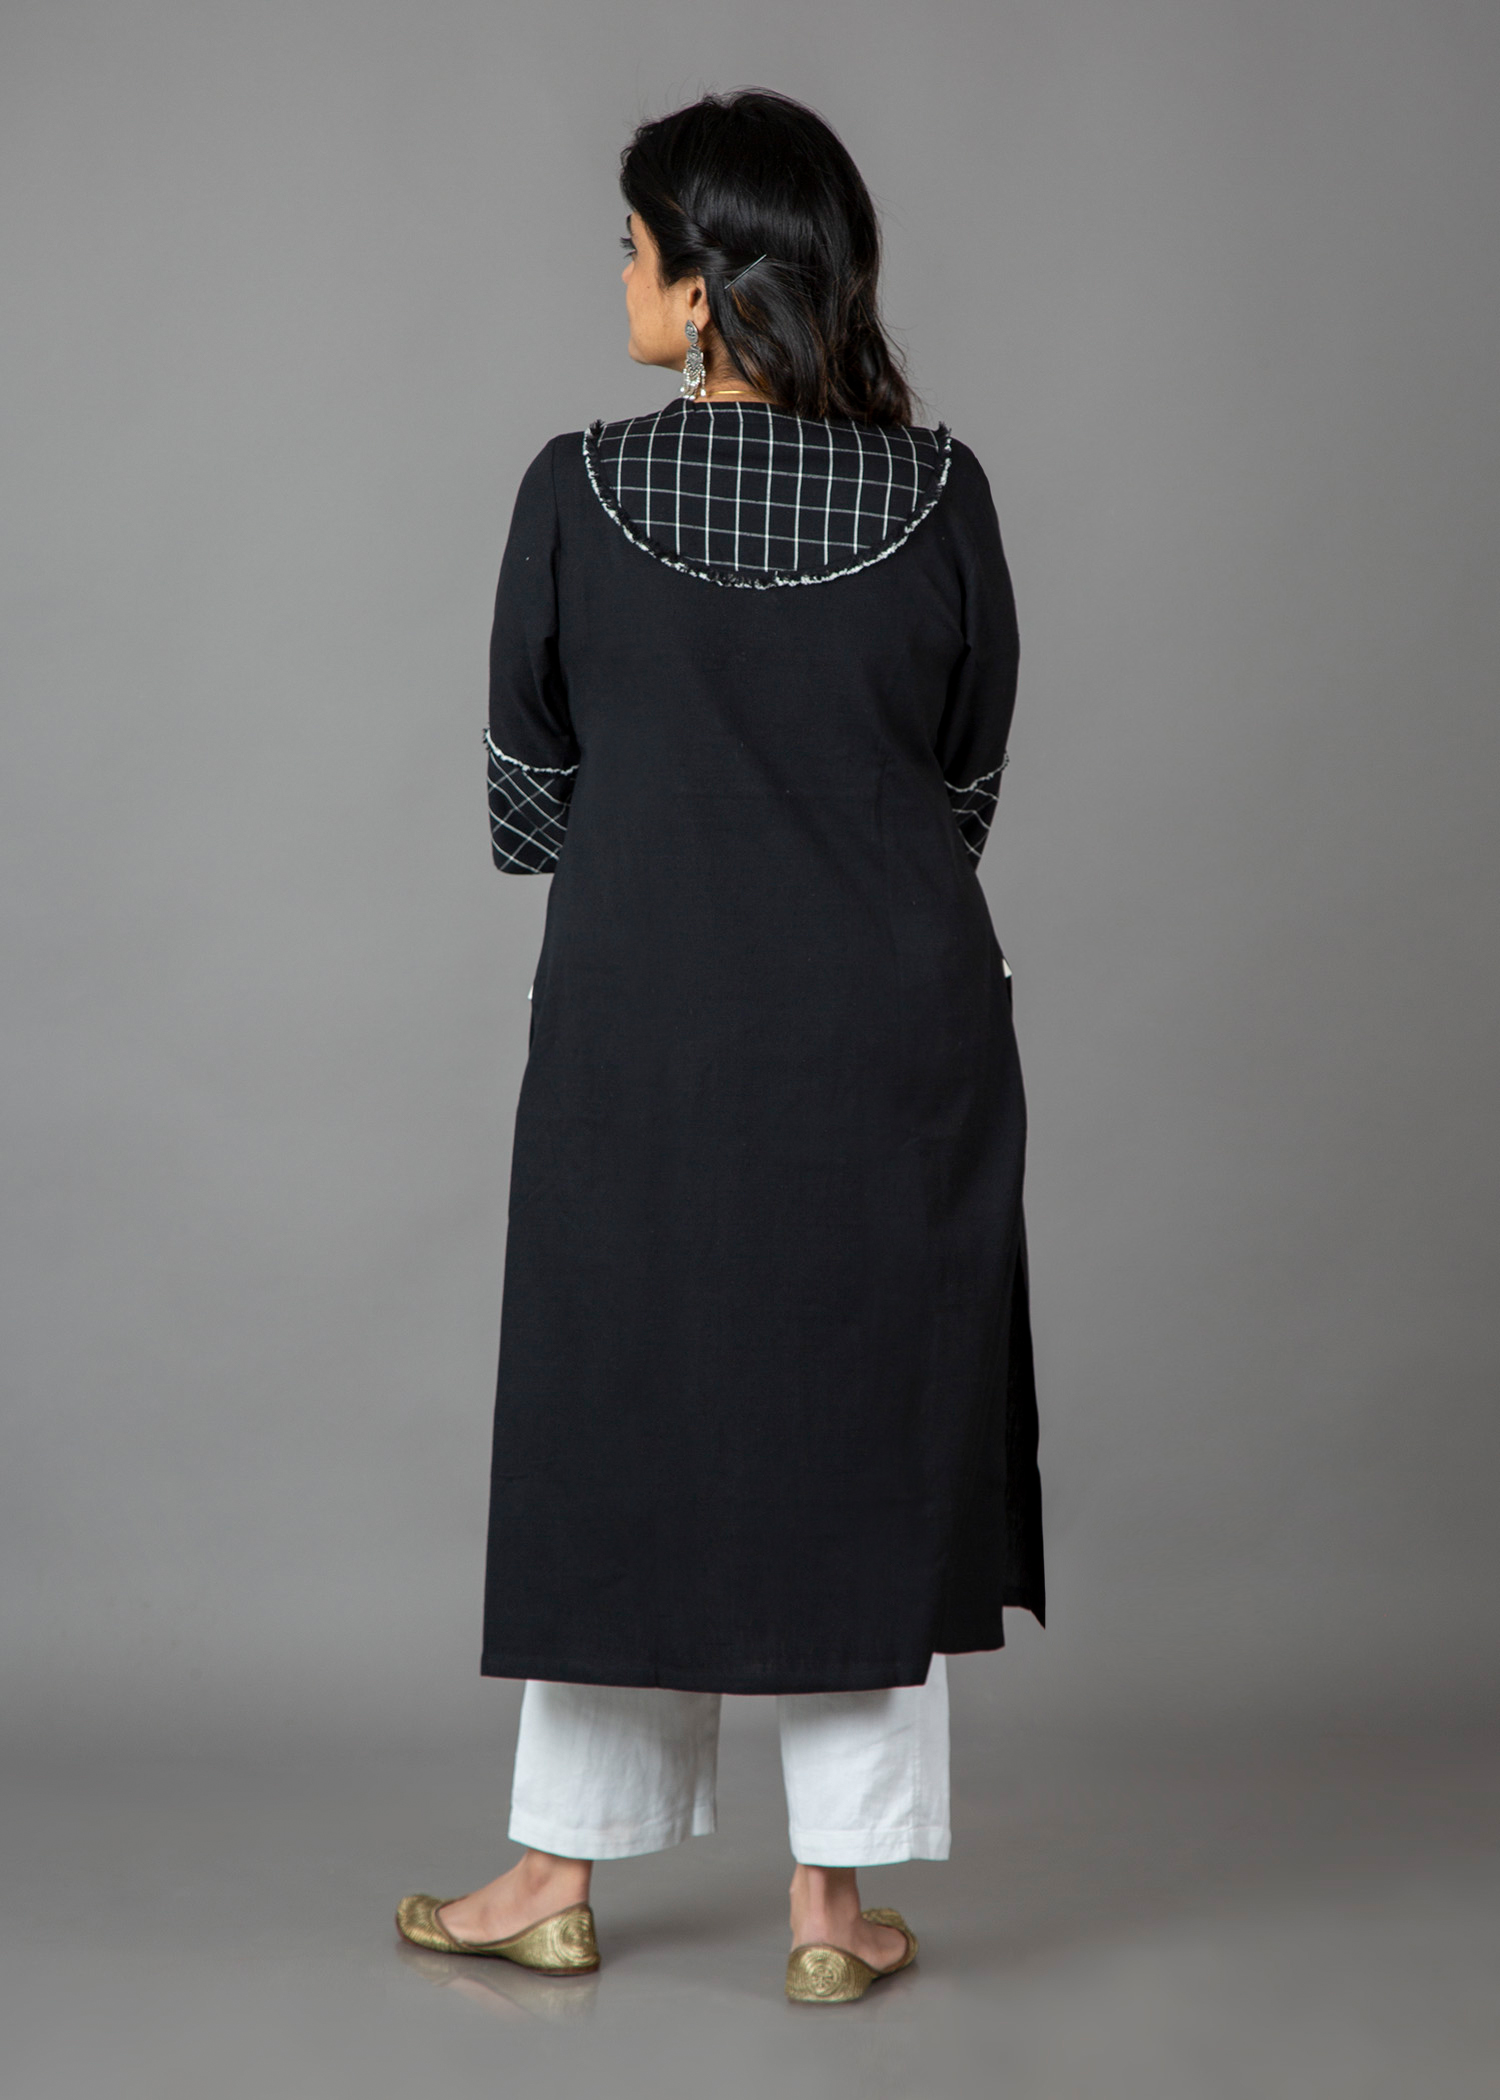 catalog/New Collection Jan-Feb 2018/black kurta 4.jpg